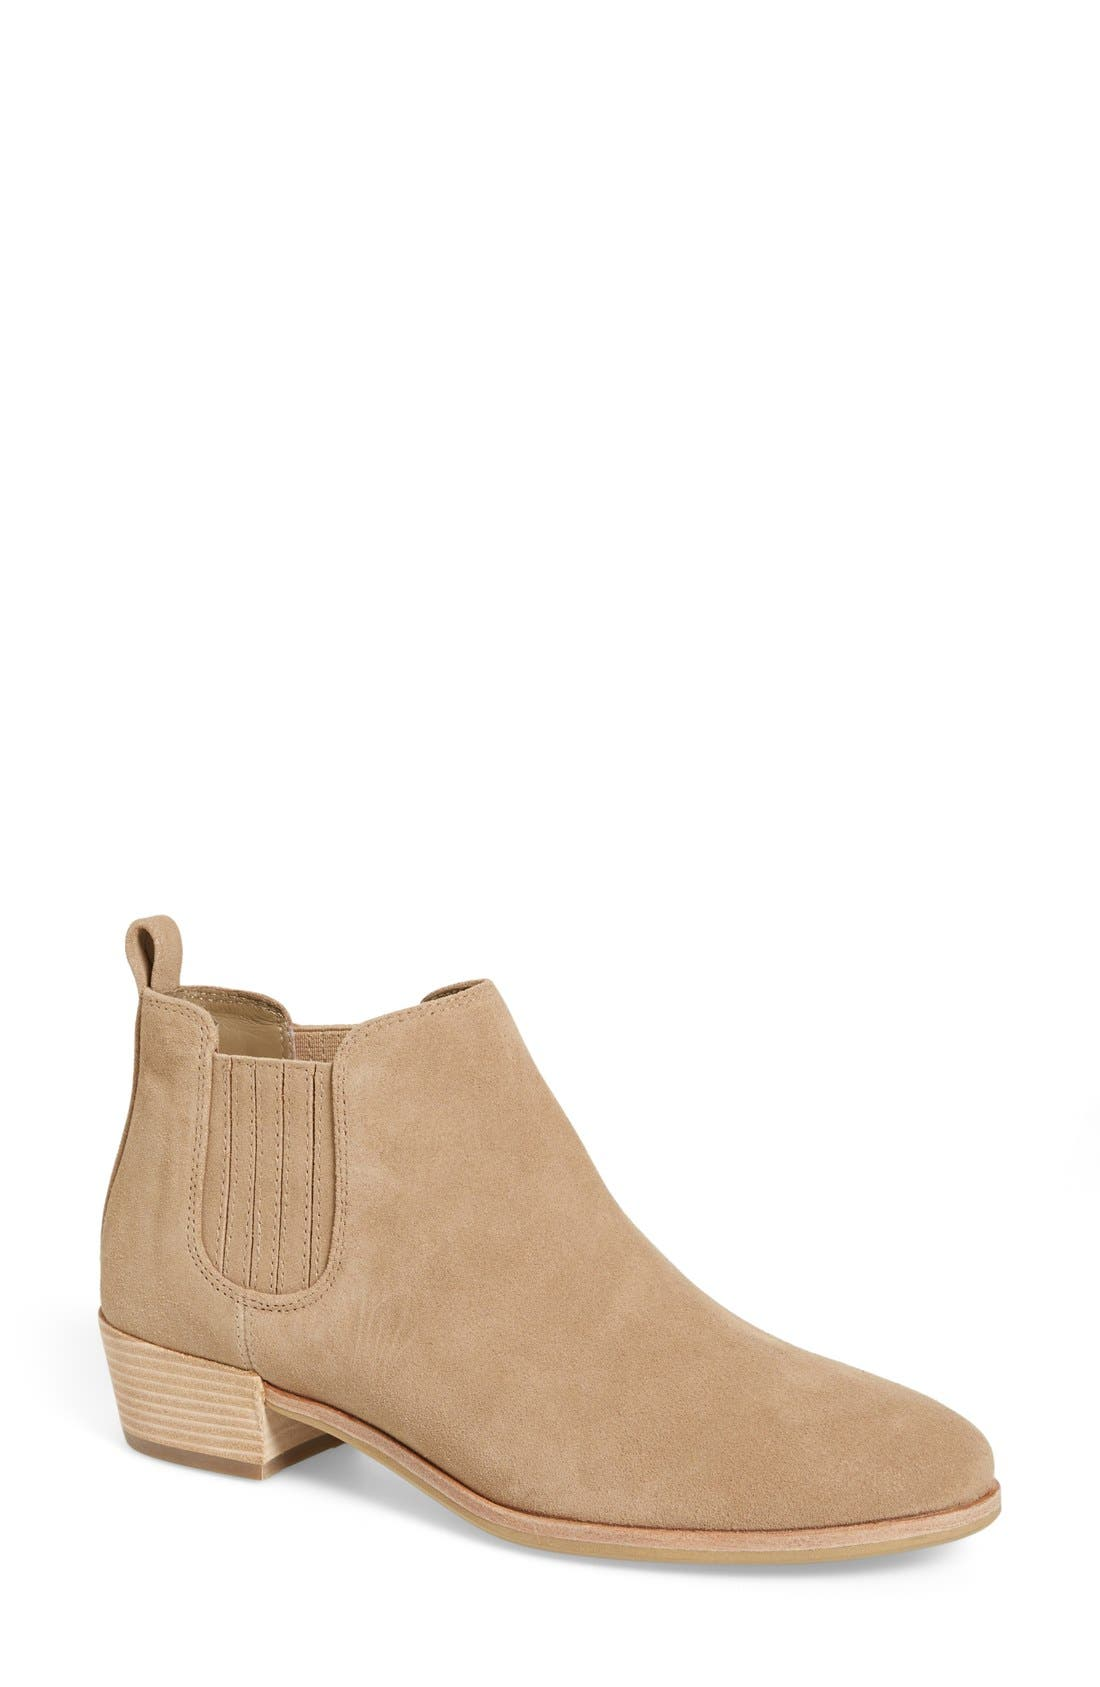 Alternate Image 1 Selected - MICHAEL Michael Kors 'Shaw' Chelsea Boot (Women)